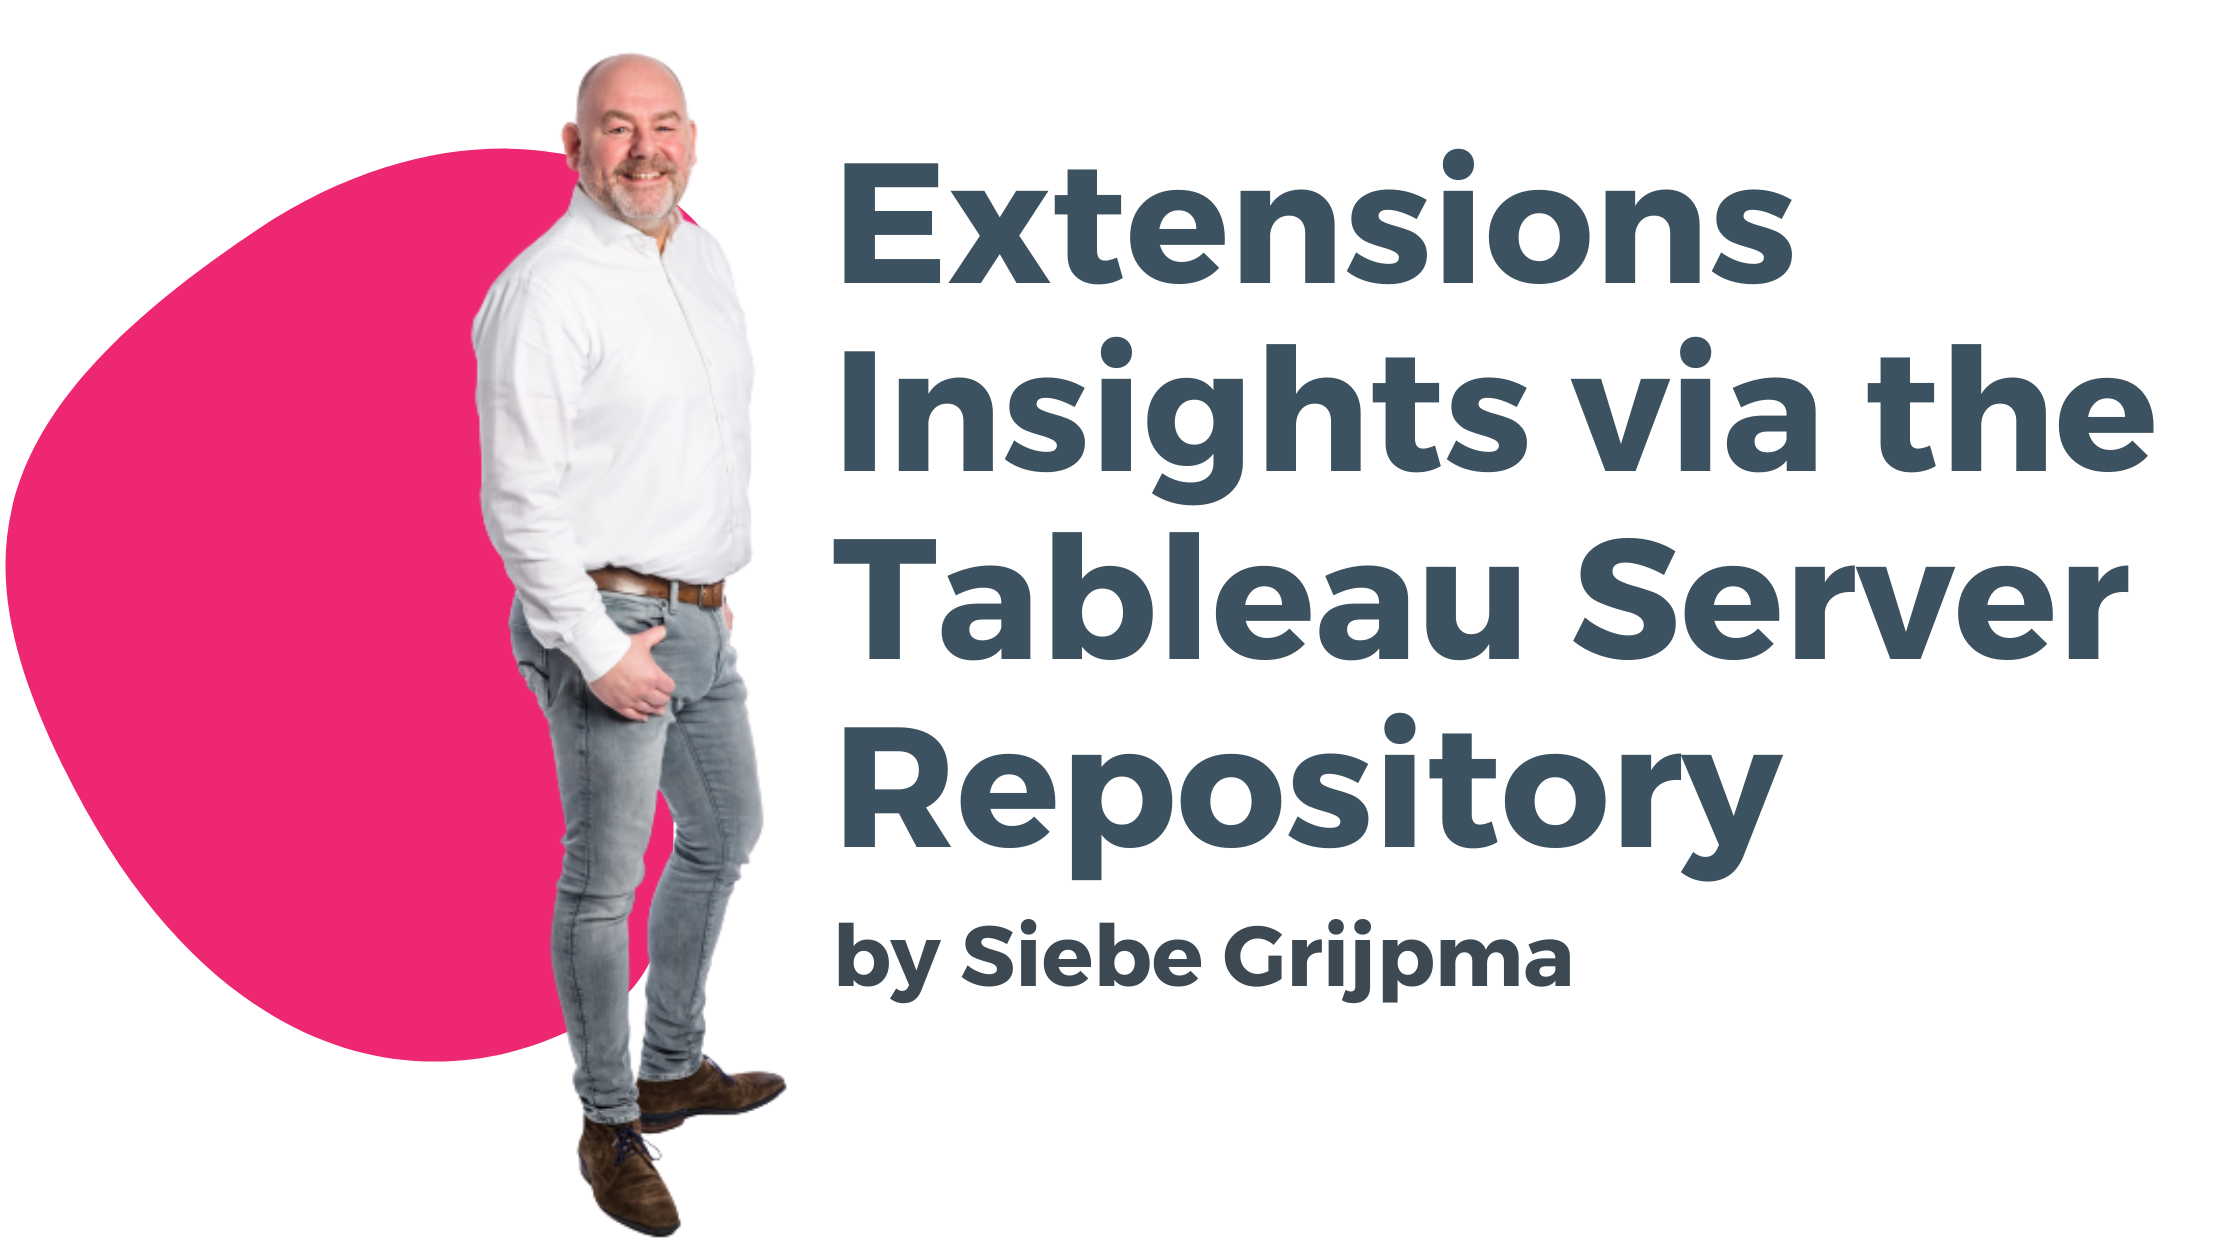 Extensions Insights via the Tableau Server Repository by Siebe Grijpma